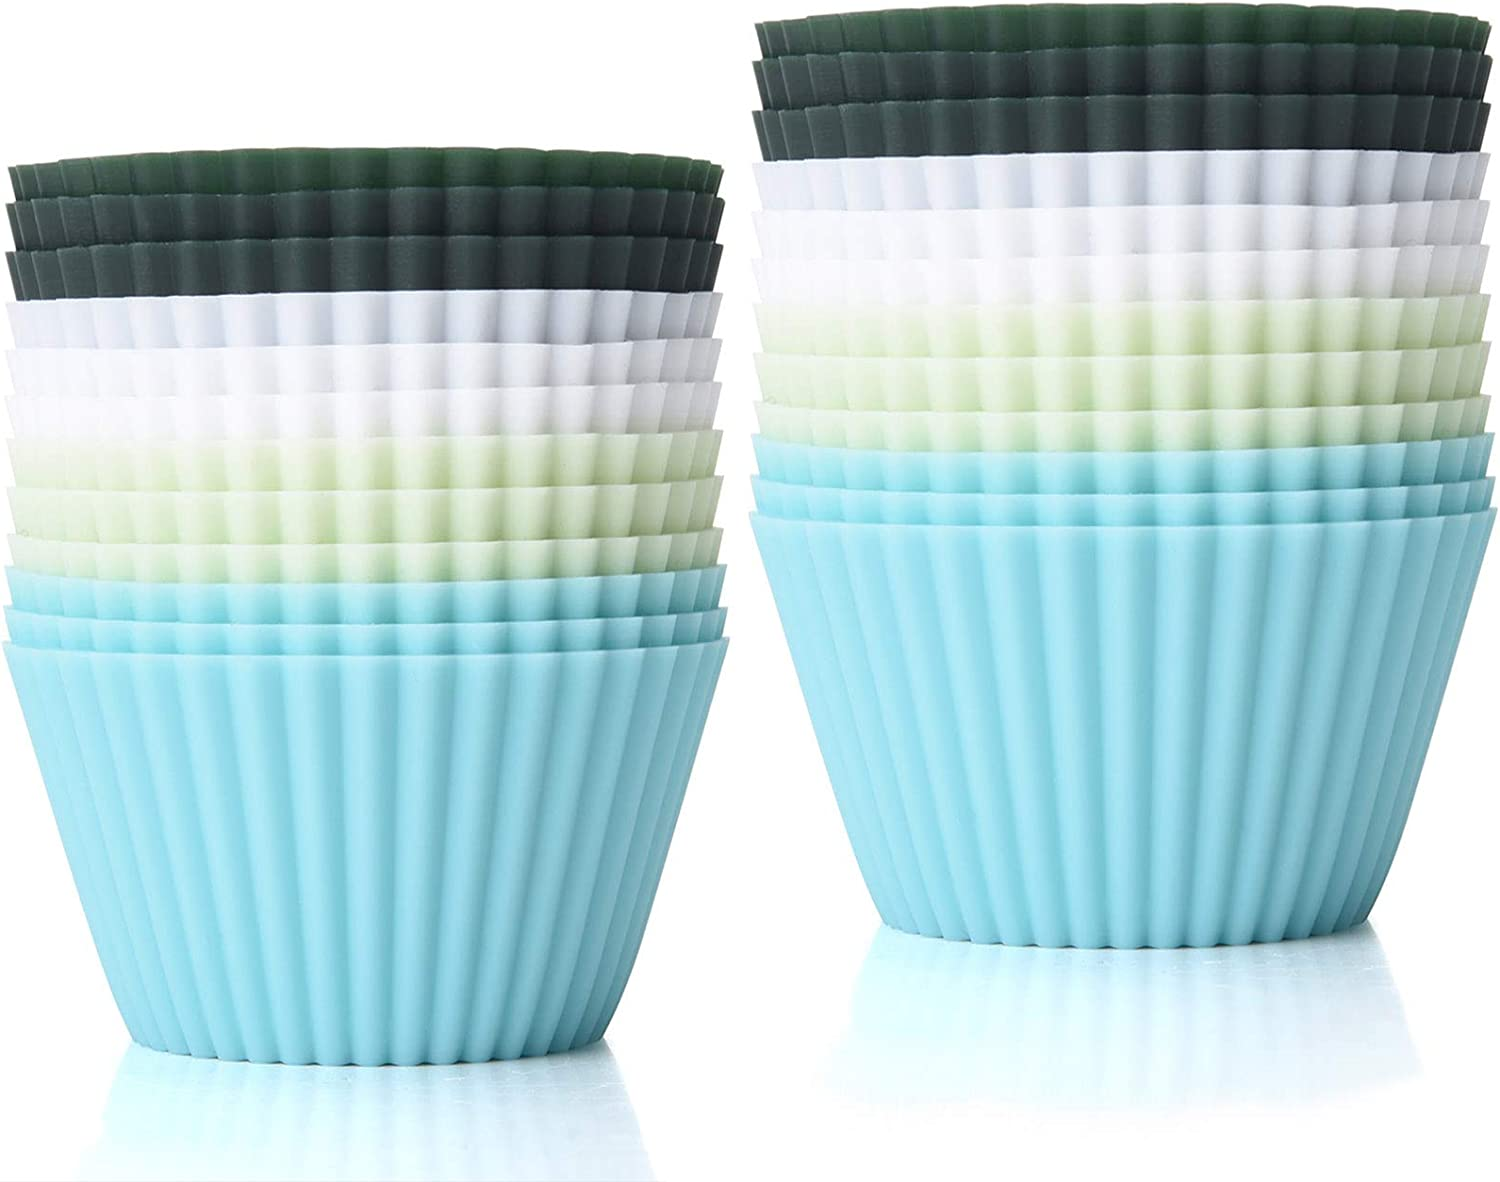 TeaRoo Silicone Baking Cups Reusable Low price free Muf 24 Pack Cupcake Liners